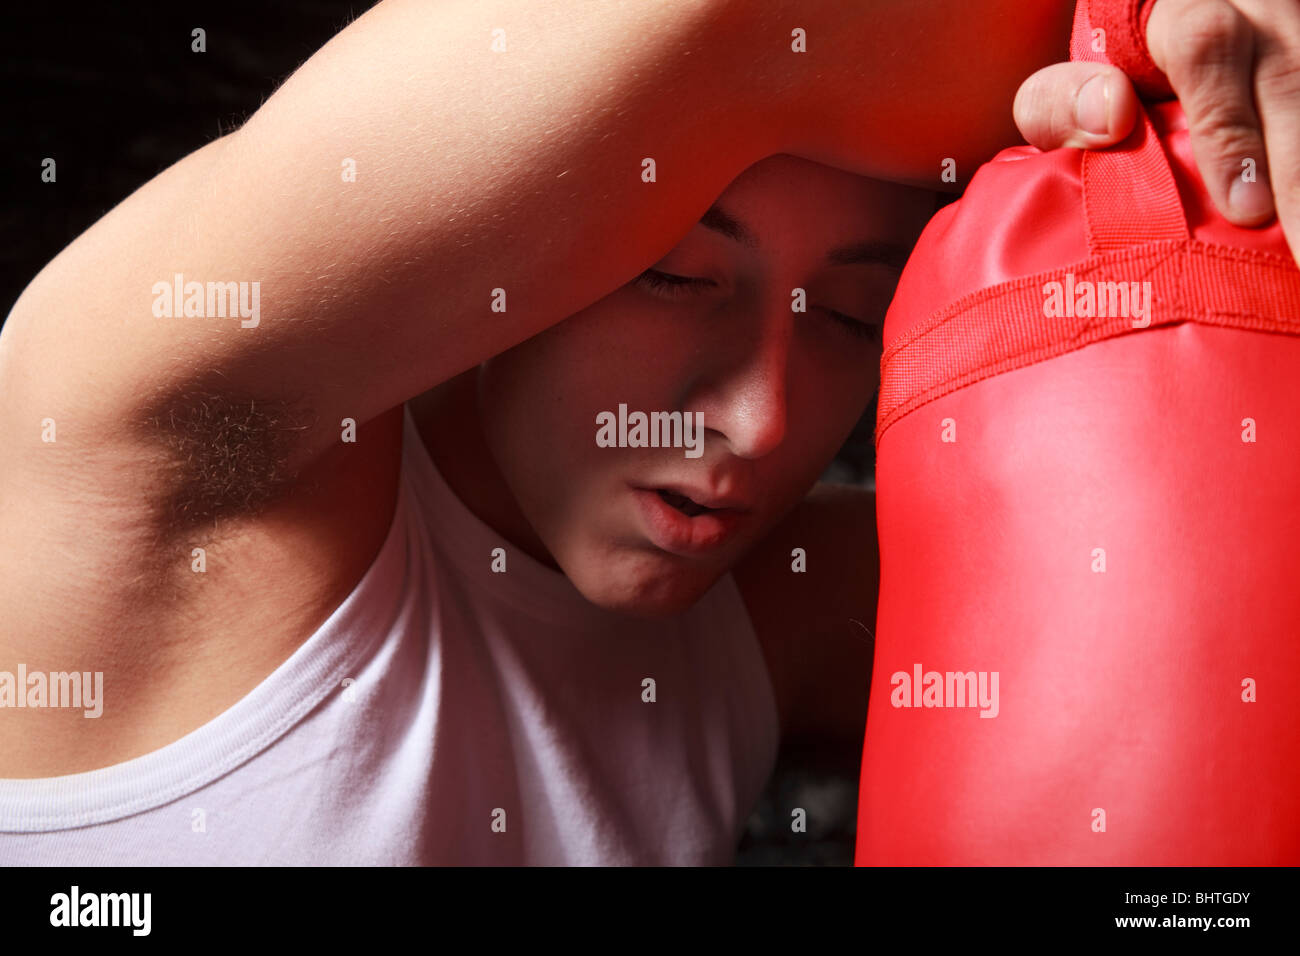 Tired sportsman resting on punch bag to recover from training exercise - Stock Image